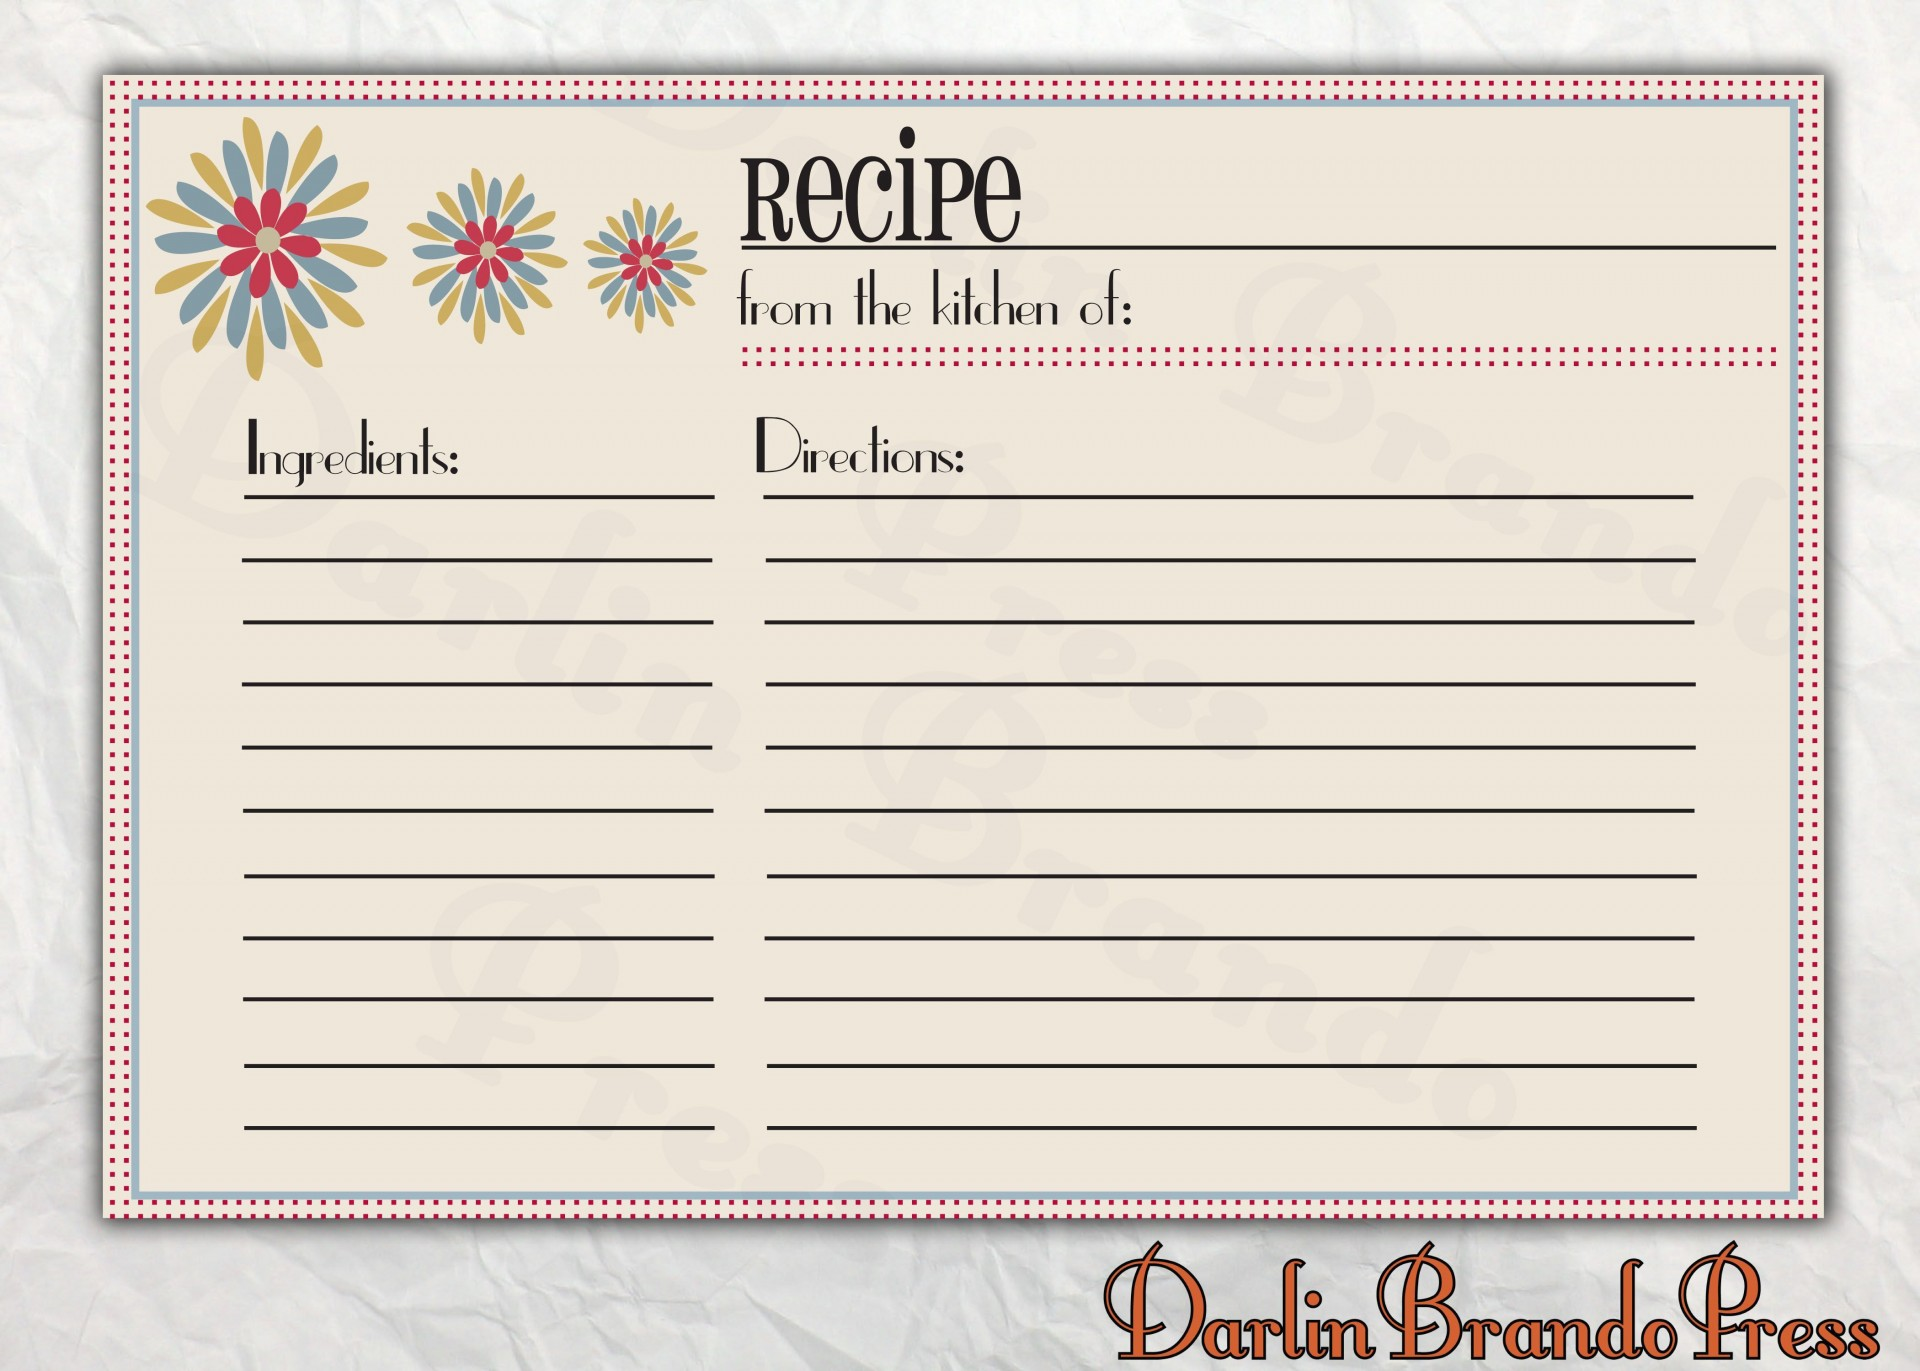 004 Breathtaking Free 4x6 Recipe Card Template For Microsoft Word High Definition  Editable1920